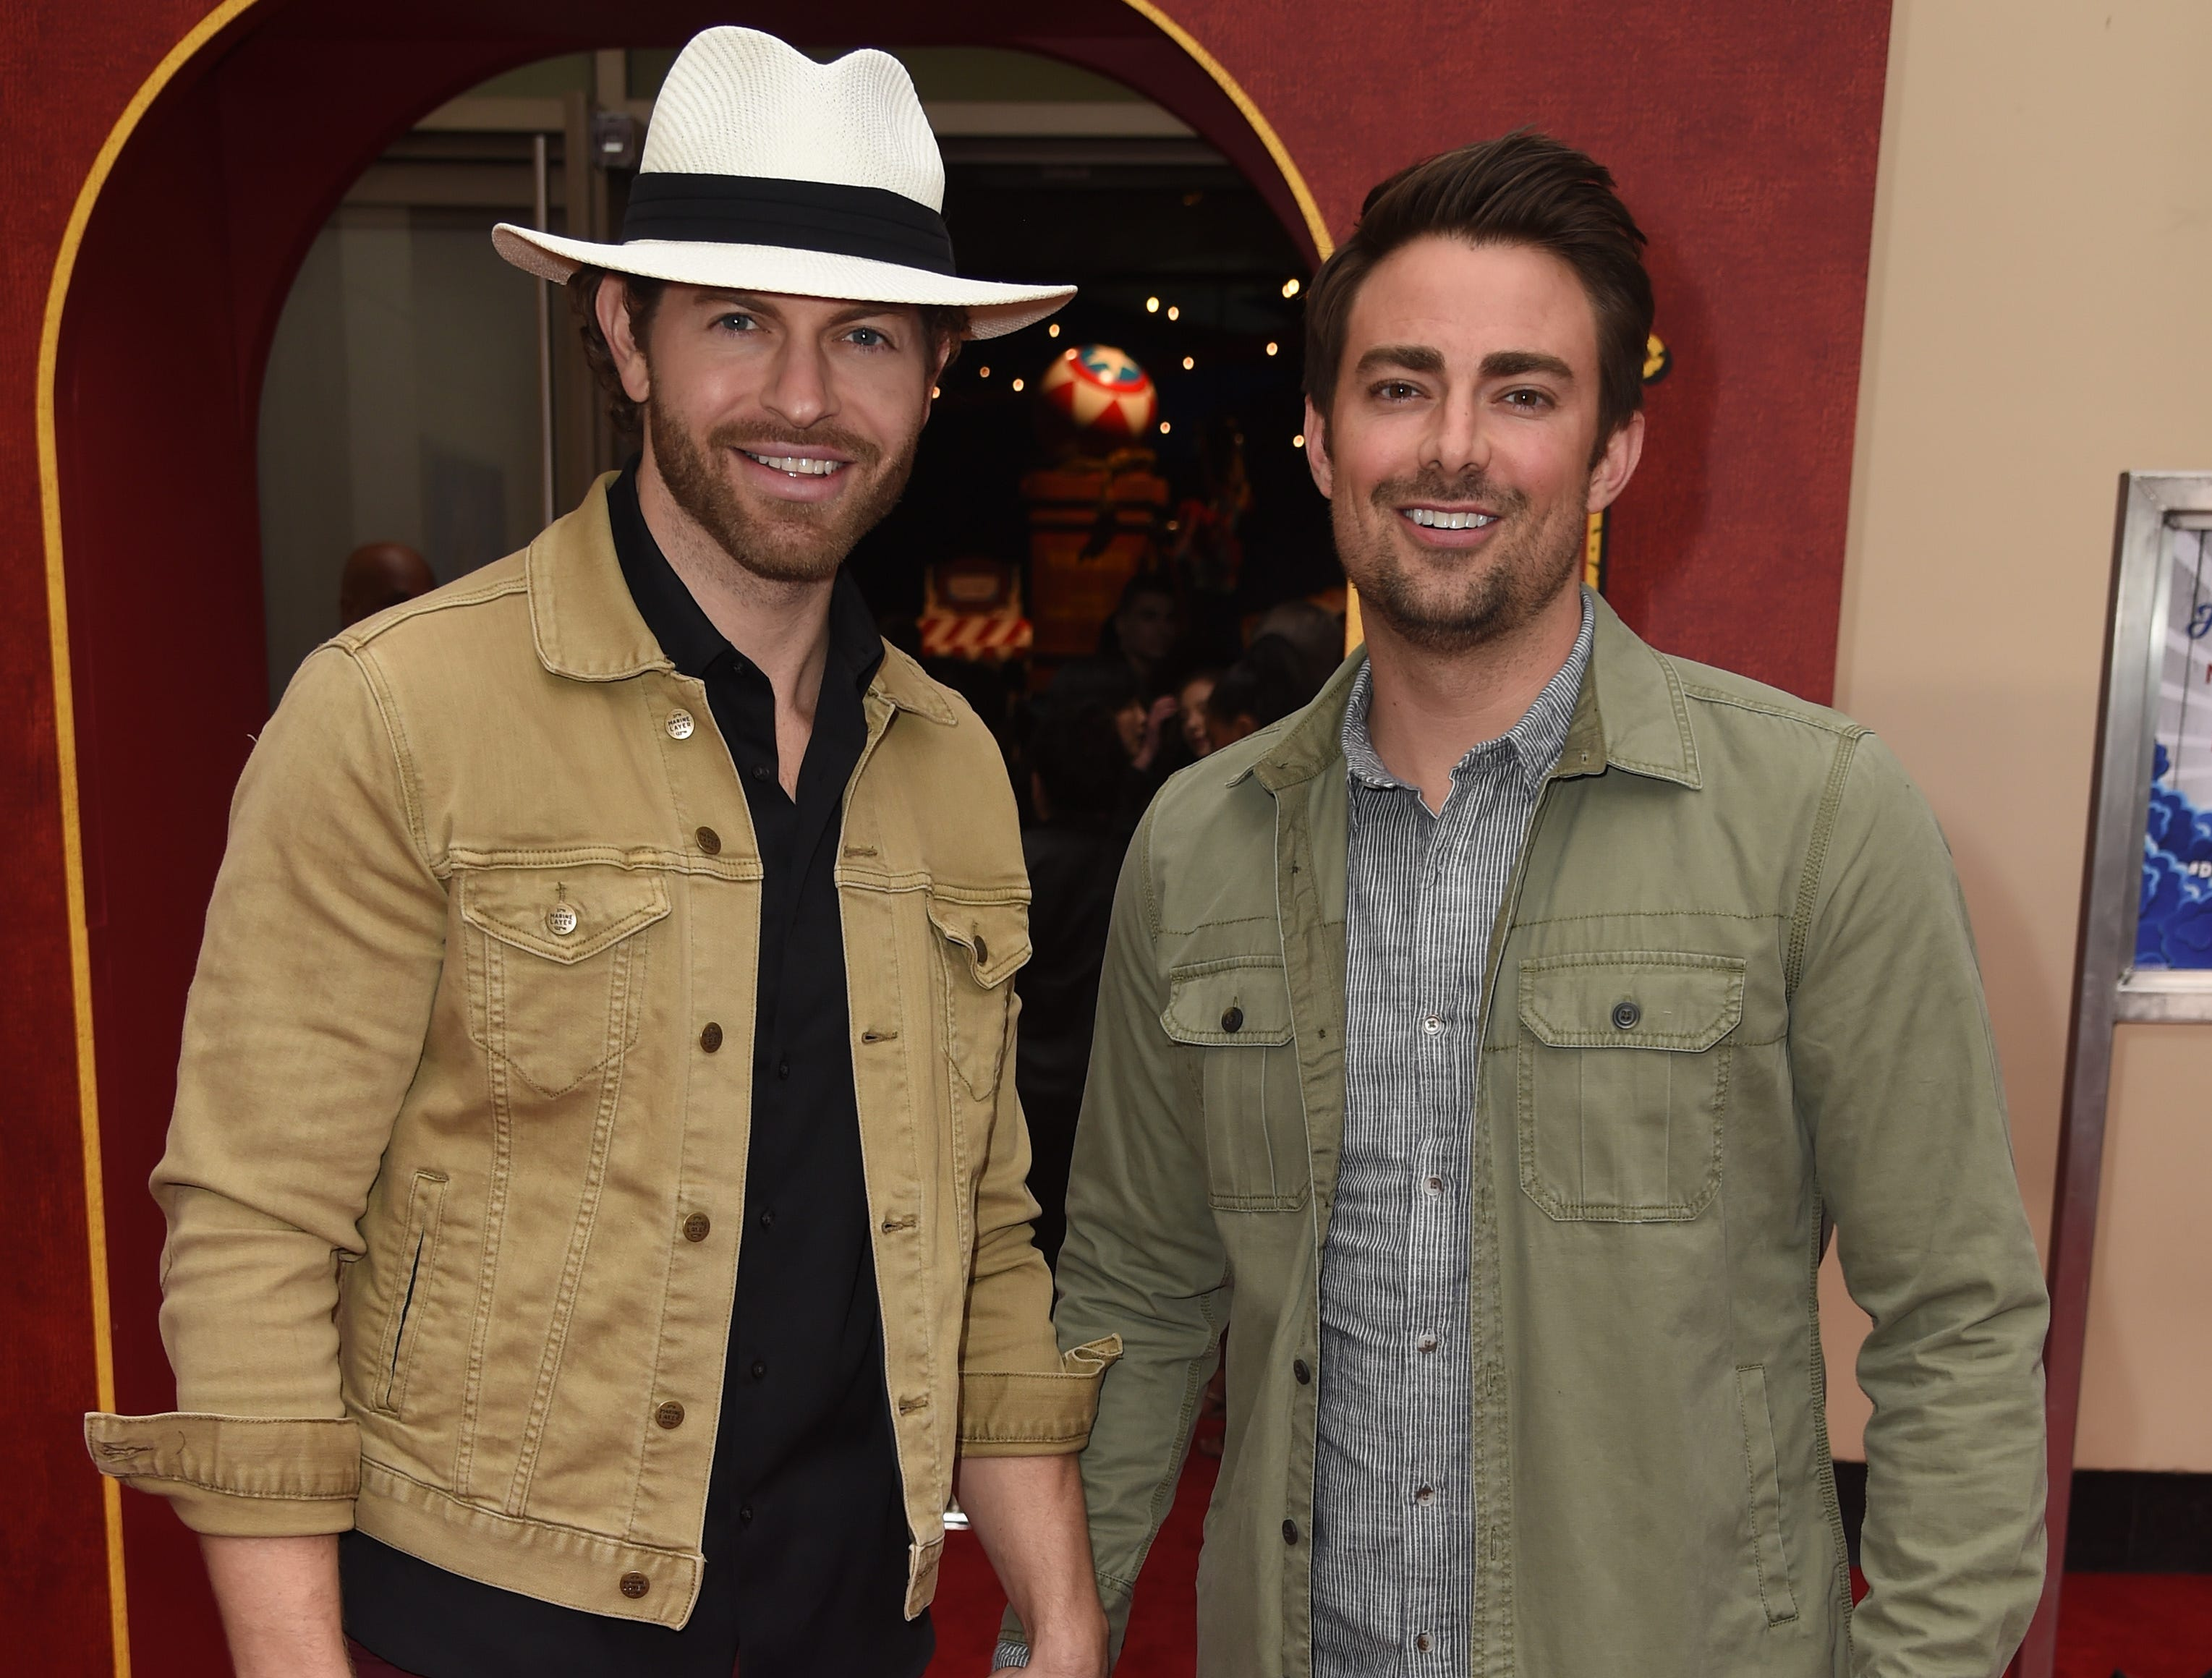 """LOS ANGELES, CALIFORNIA - MARCH 11: (L-R) Jaymes Vaughan and  Jonathan Bennett attend the premiere of Disney's """"Dumbo"""" at El Capitan Theatre on March 11, 2019 in Los Angeles, California. (Photo by Kevin Winter/Getty Images) ORG XMIT: 775305574 ORIG FILE ID: 1135219115"""